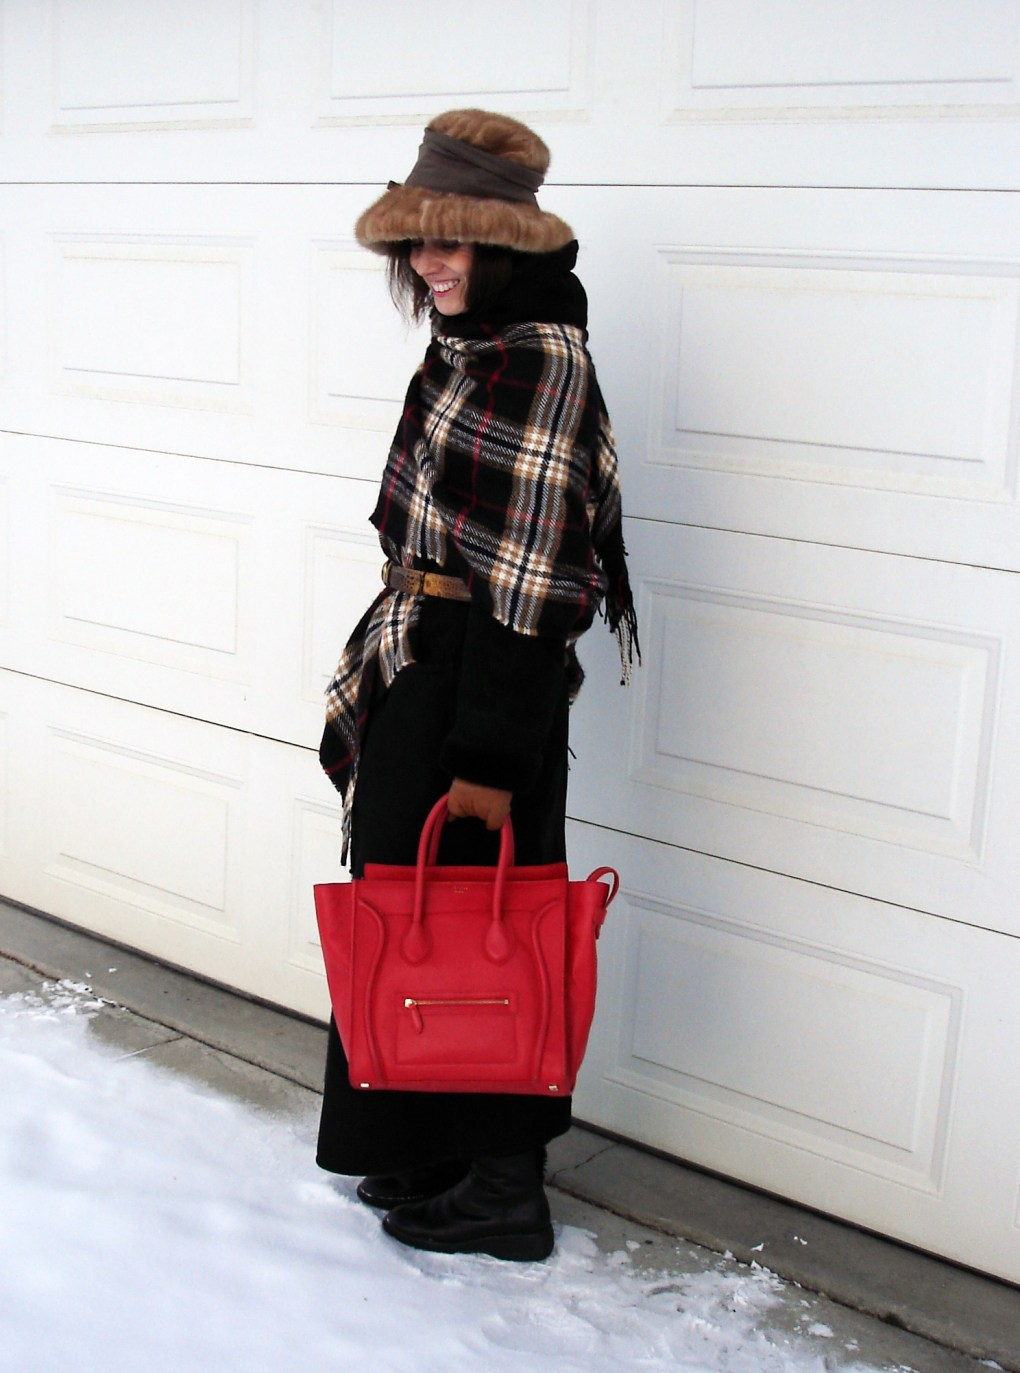 midlife women dressed for frigid cold weather